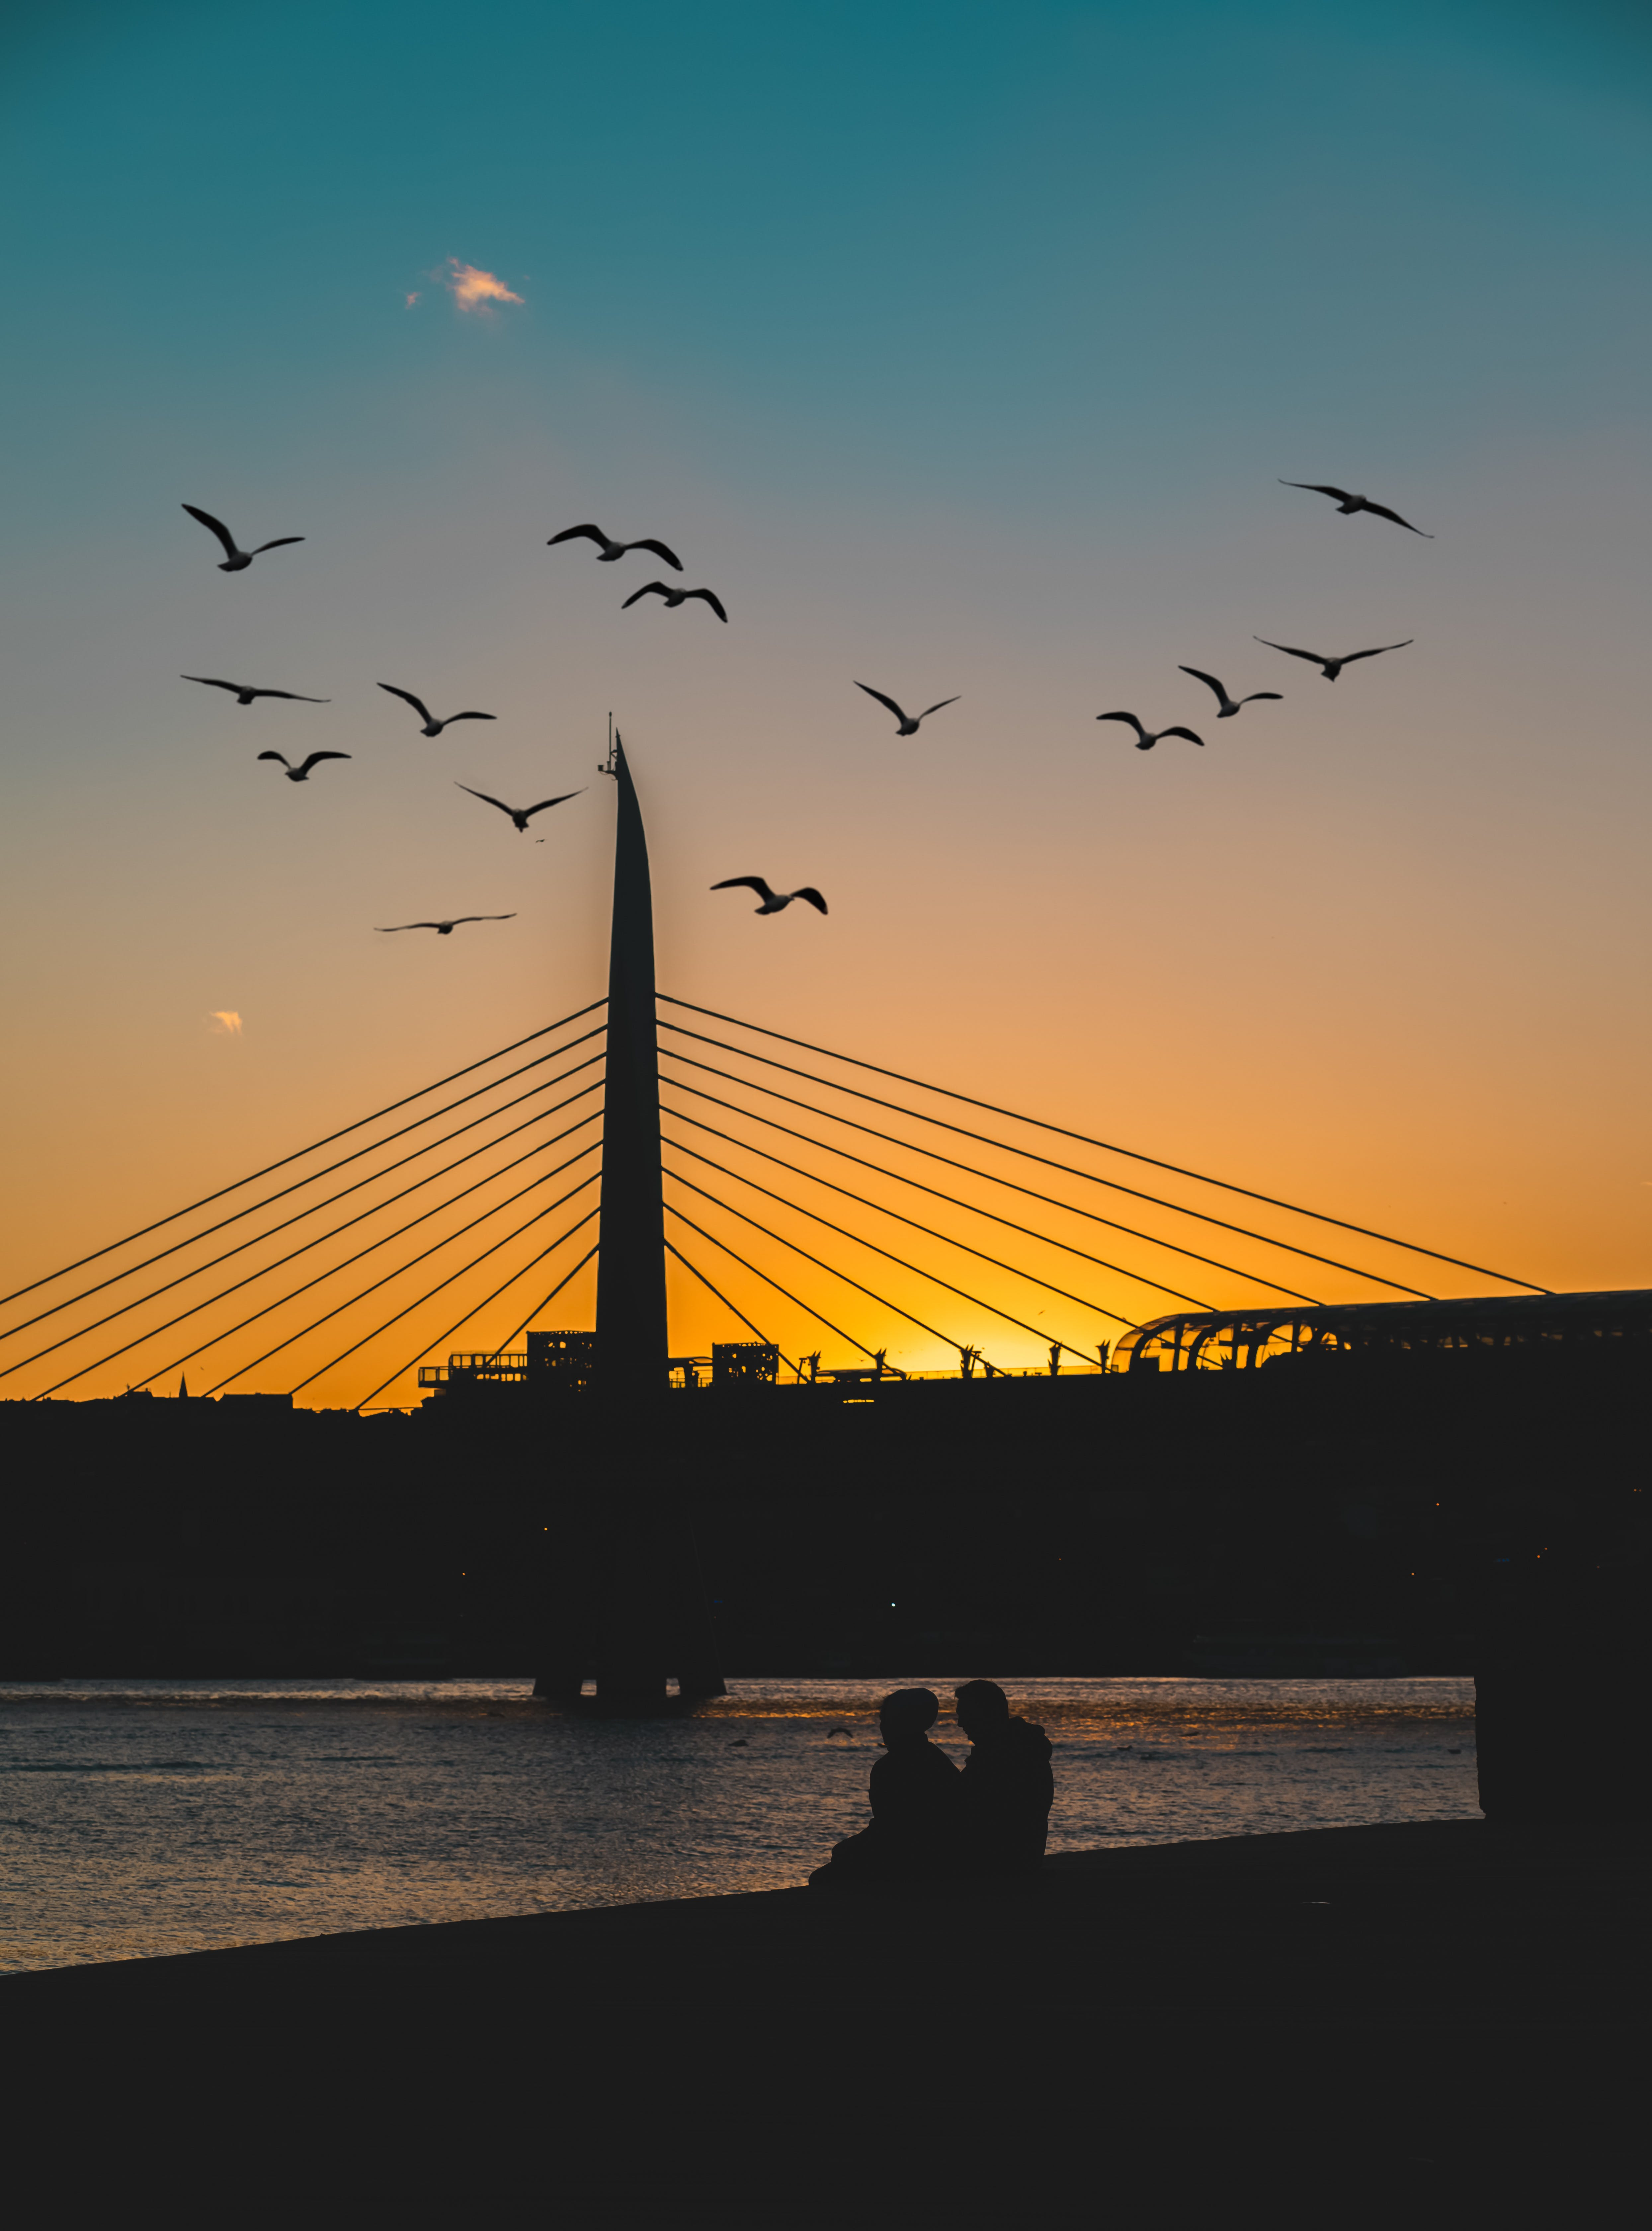 Silhouette of Bridge With Two People on Side of Body of Water